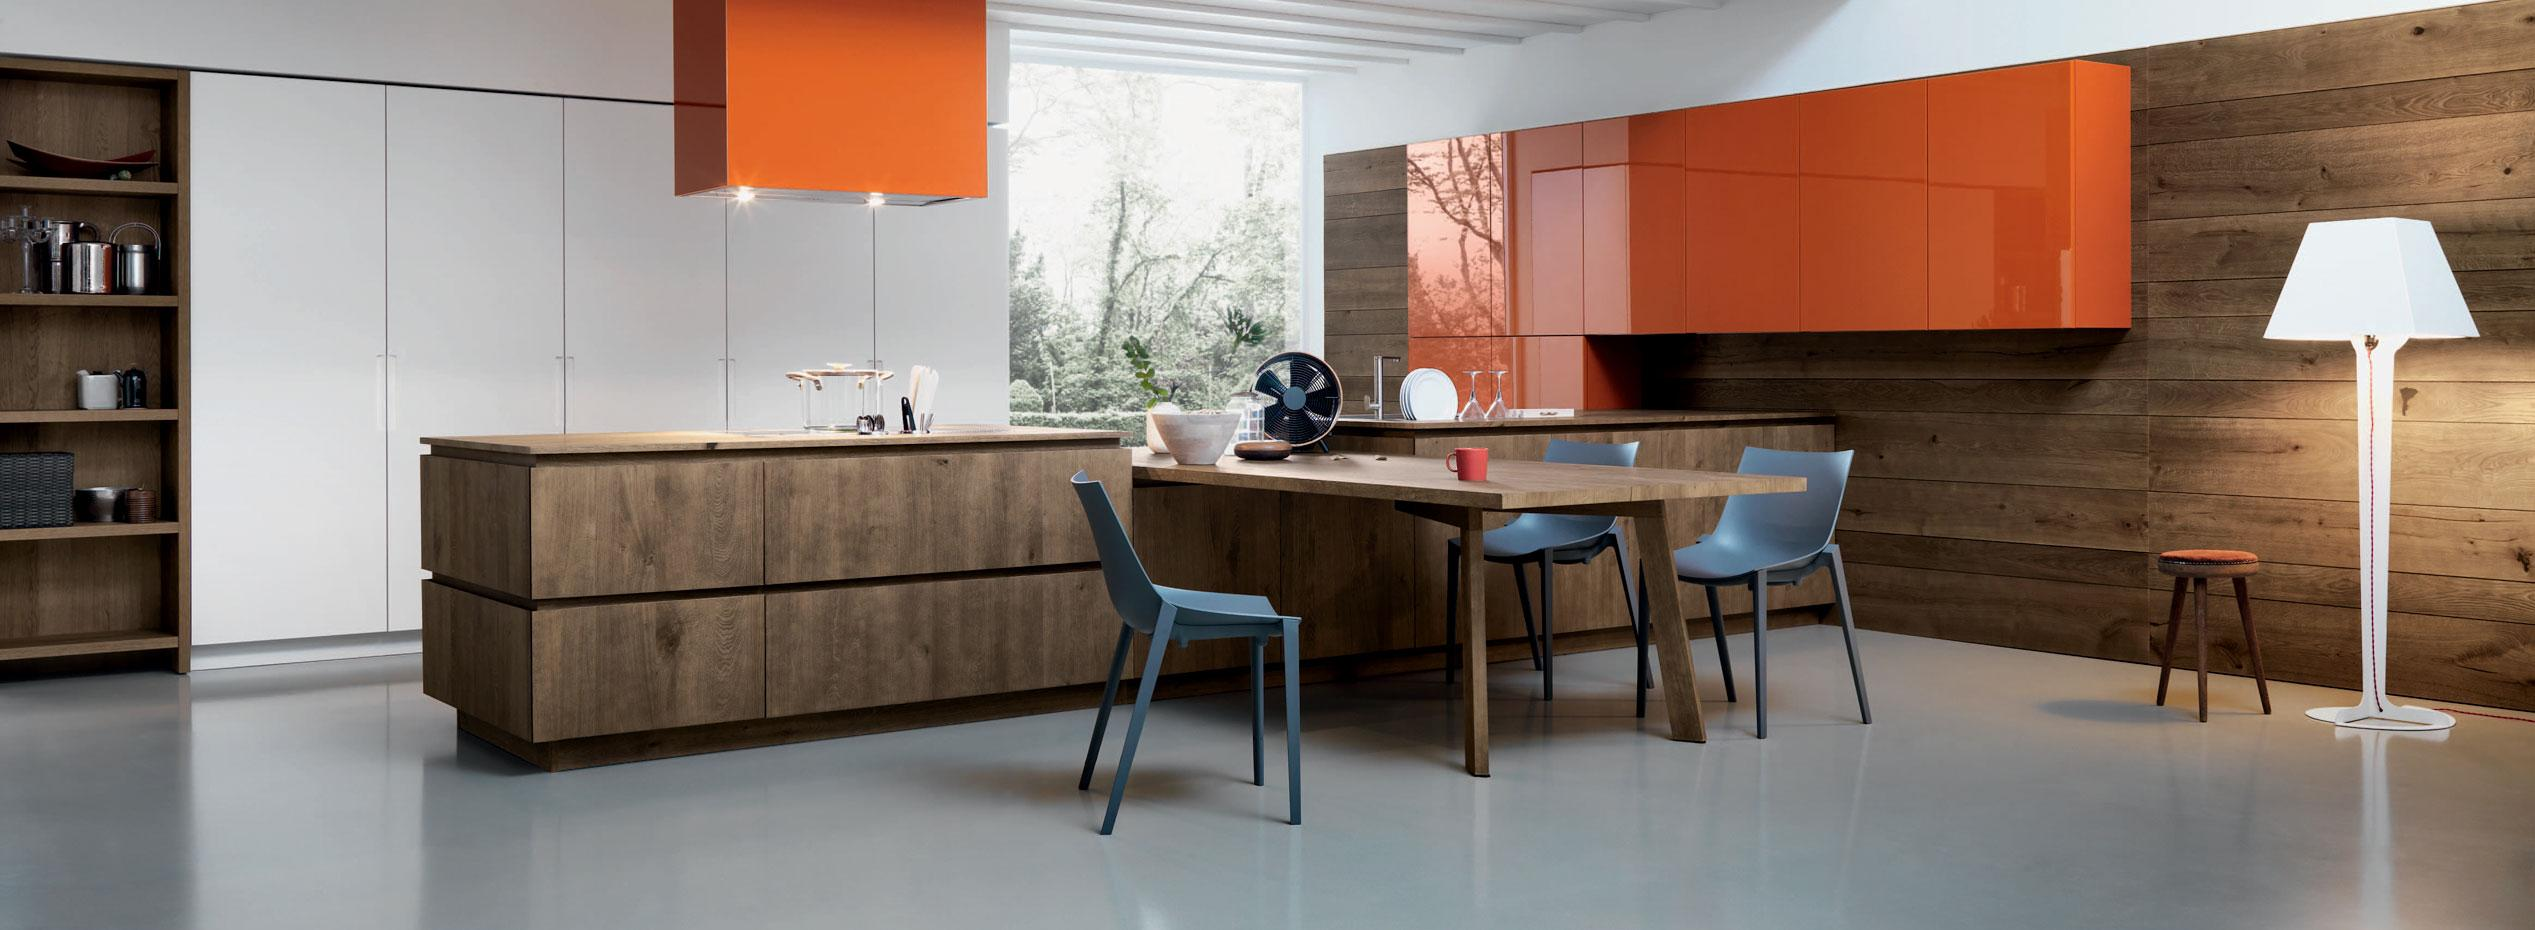 new-italian-kitchen-design-sydney